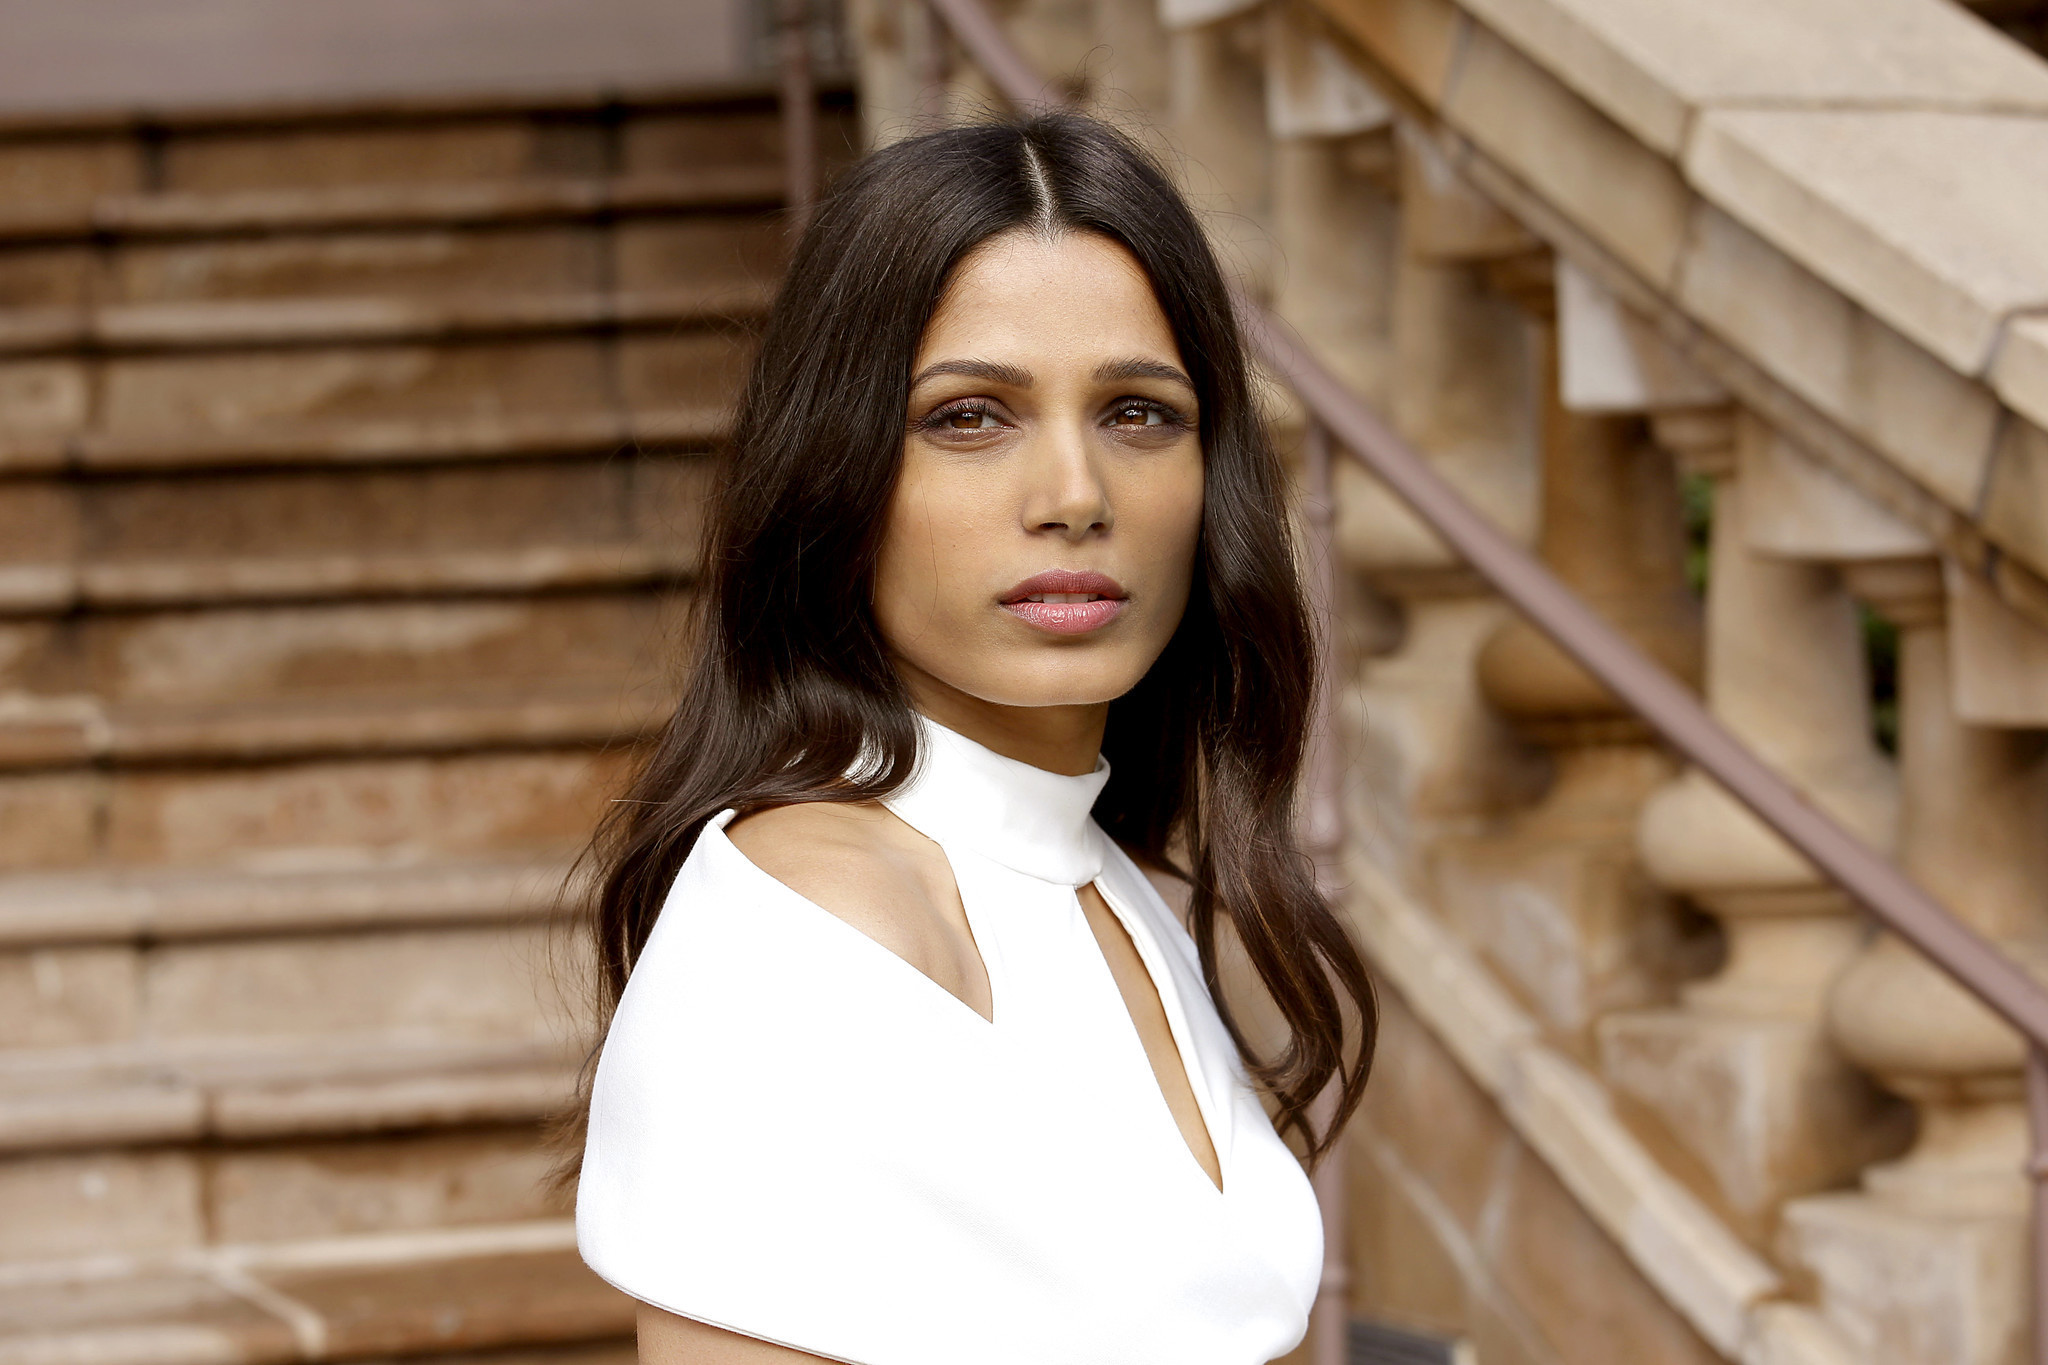 Freida Pinto shows her passionate side and causes a stir in Showtime's 'Guerrilla' - Chicago Tribune Freida Pinto